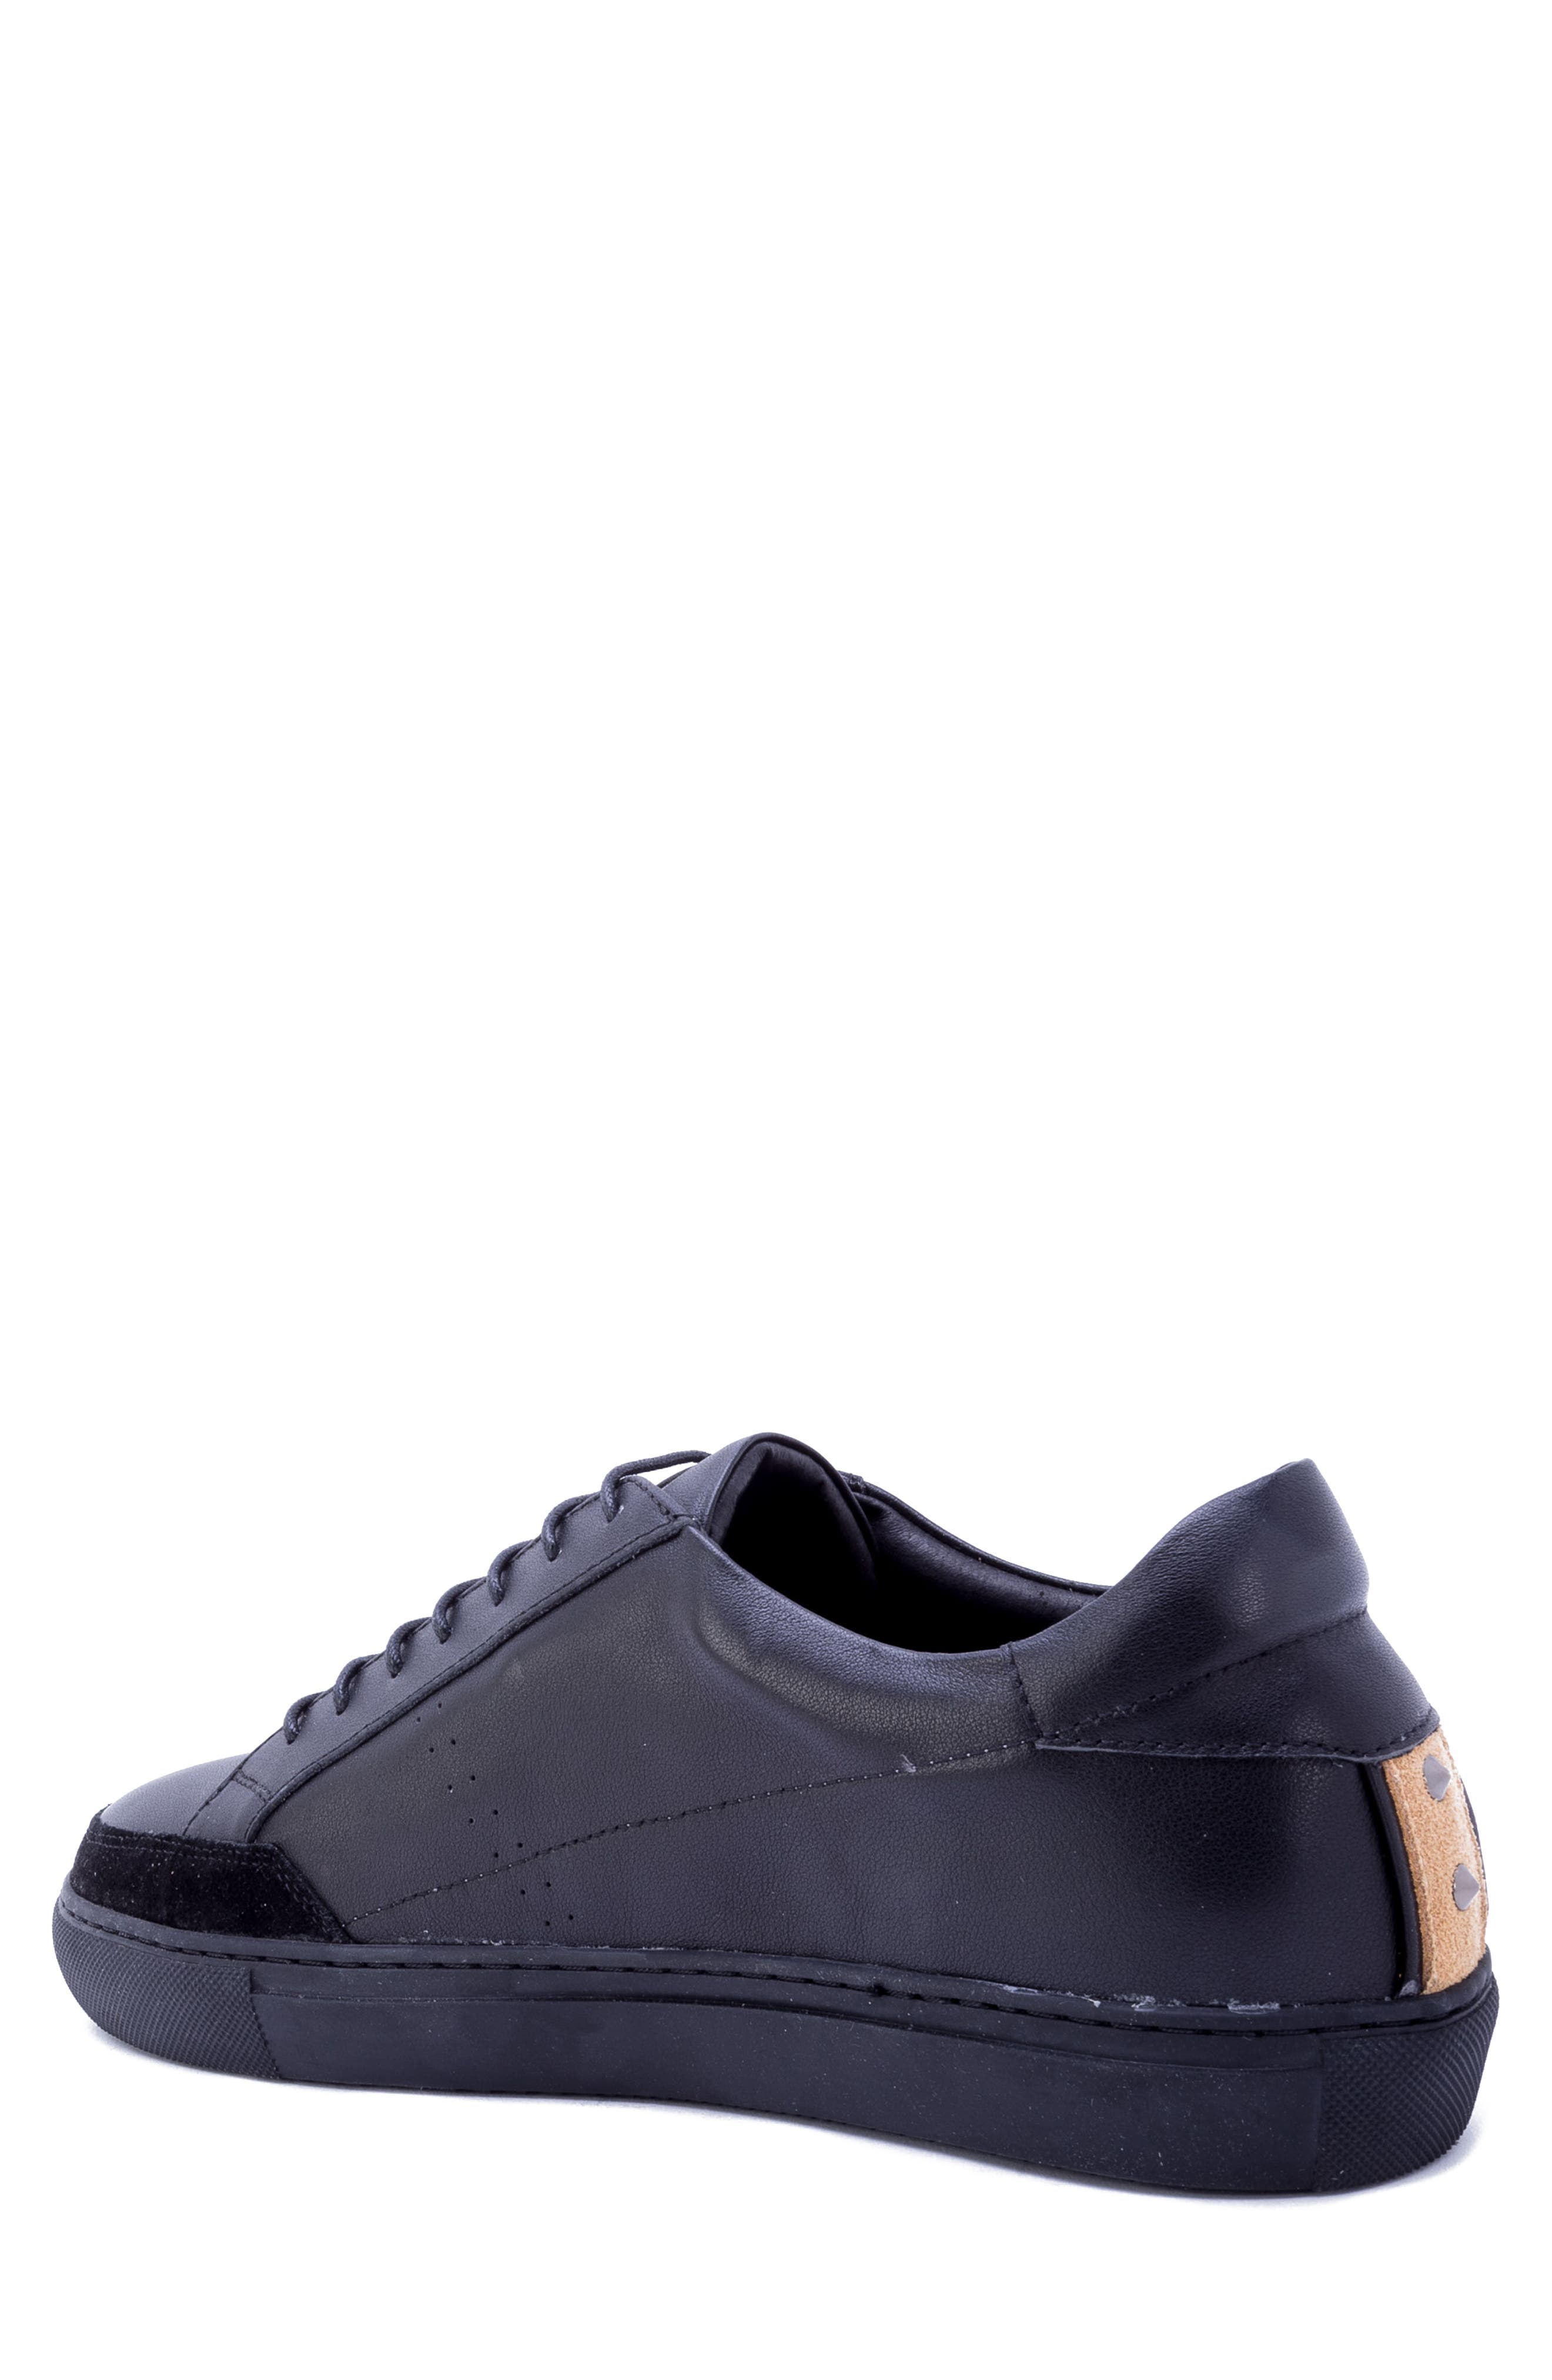 Connery Sneaker,                             Alternate thumbnail 2, color,                             BLACK LEATHER